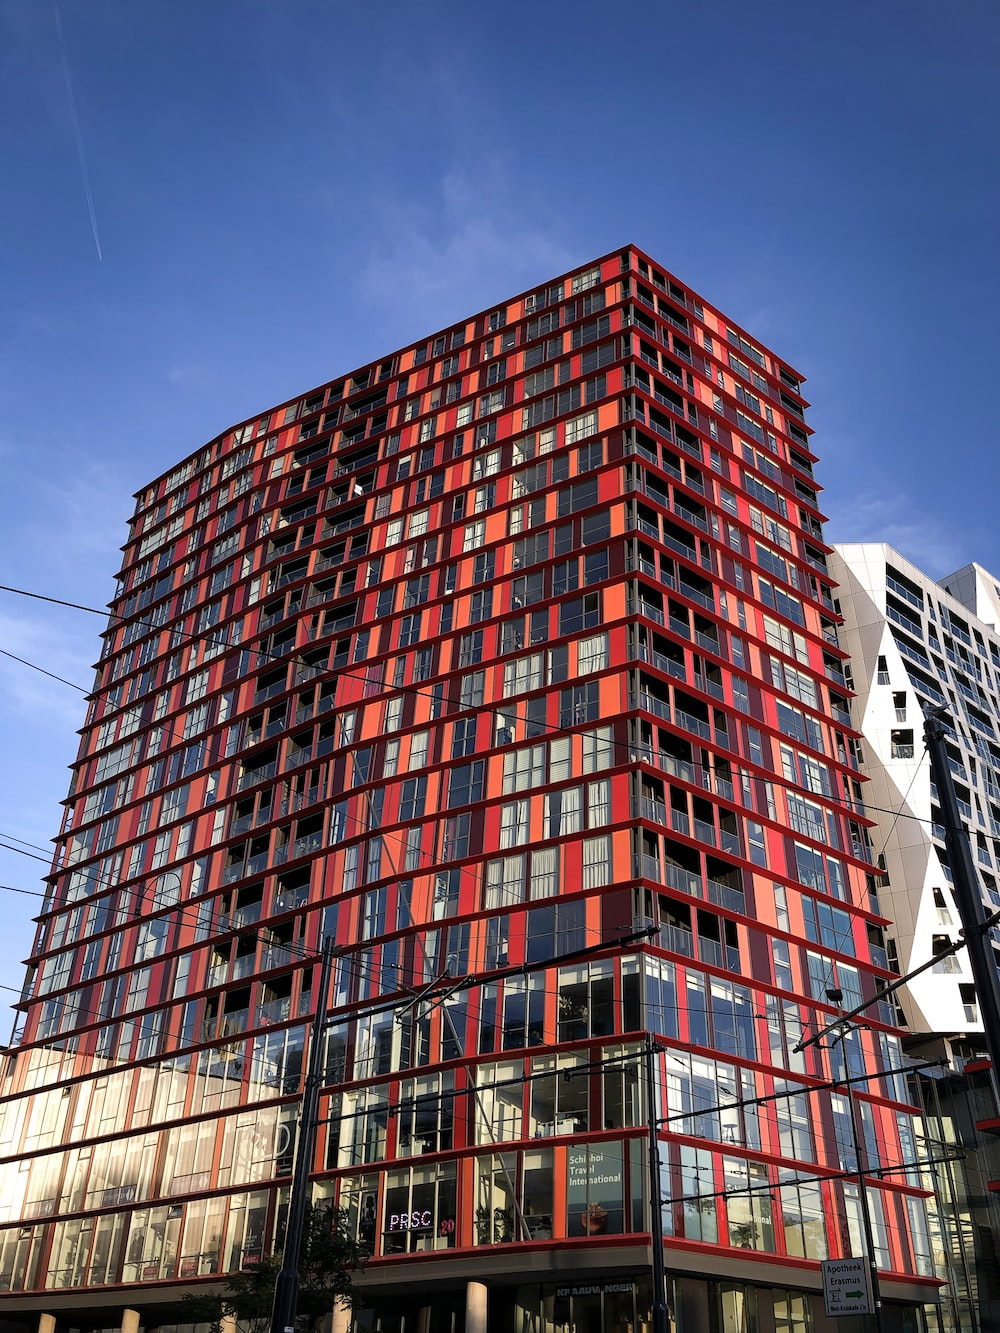 architectural photo of black and red concrete building